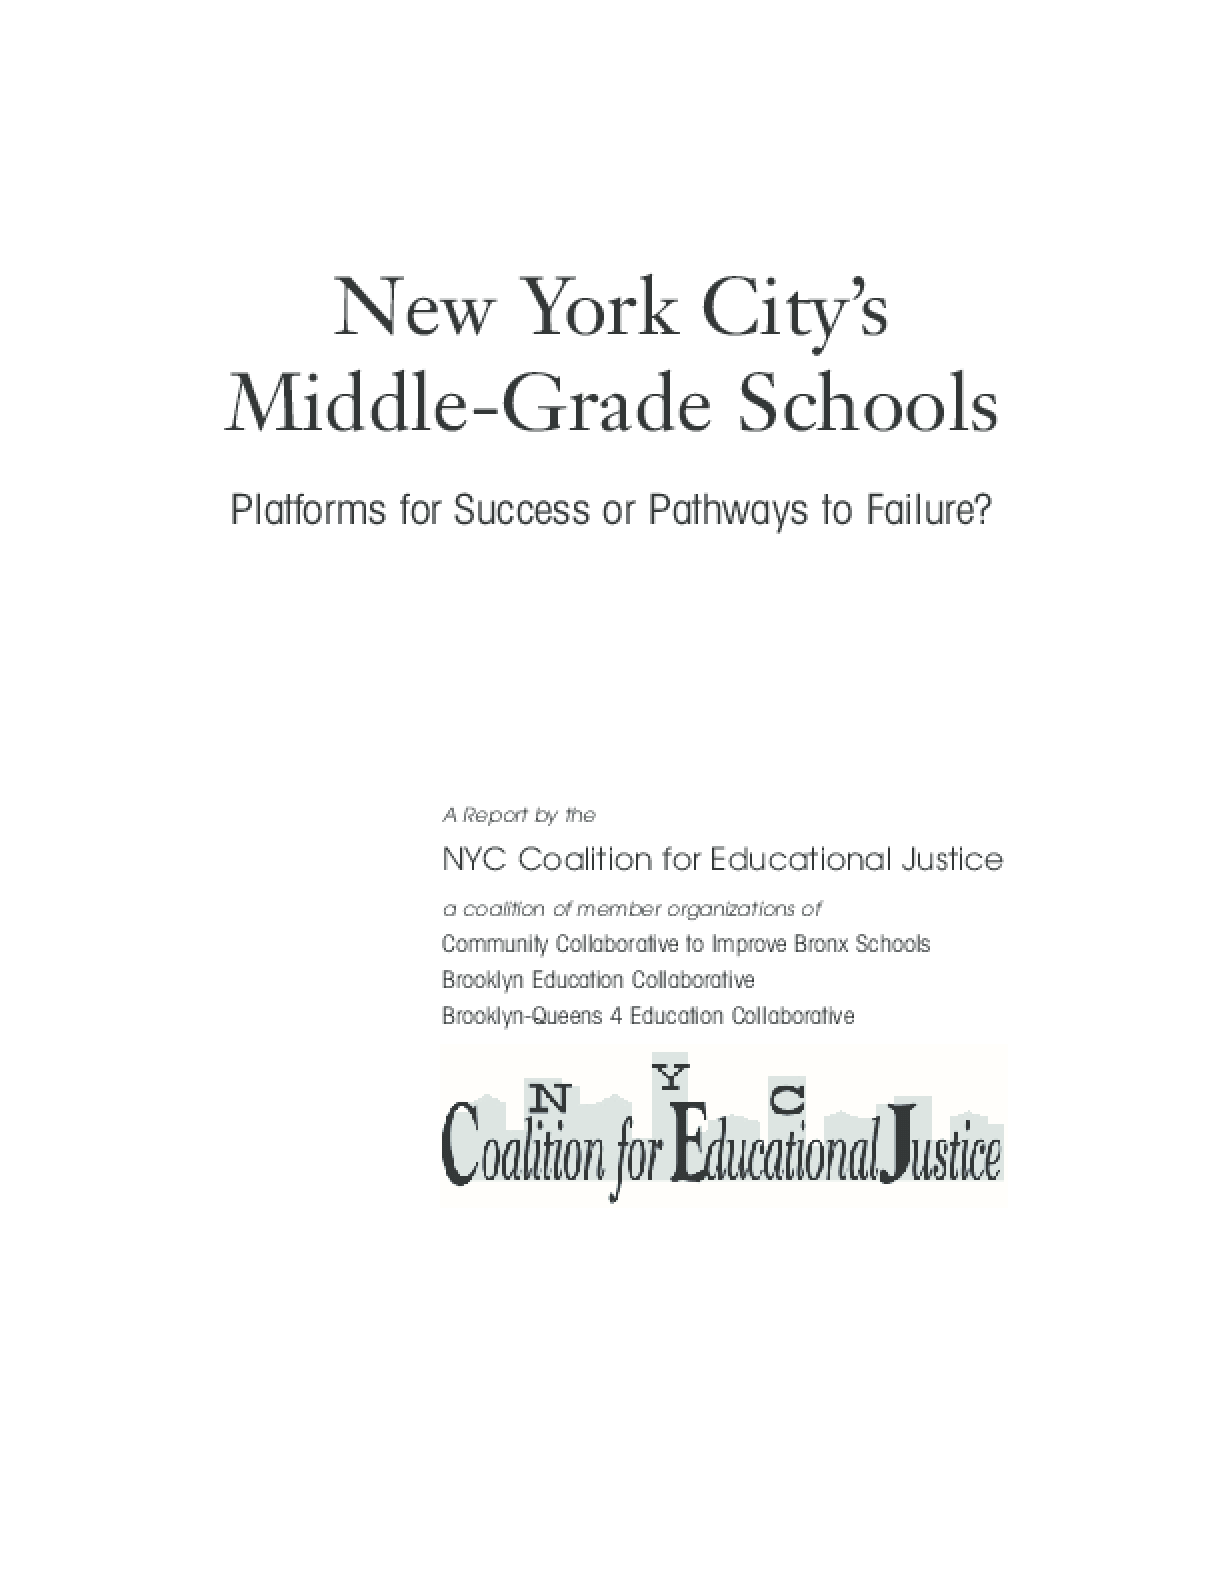 New York City's Middle-Grade Schools: Platforms for Success or Pathways to Failure?